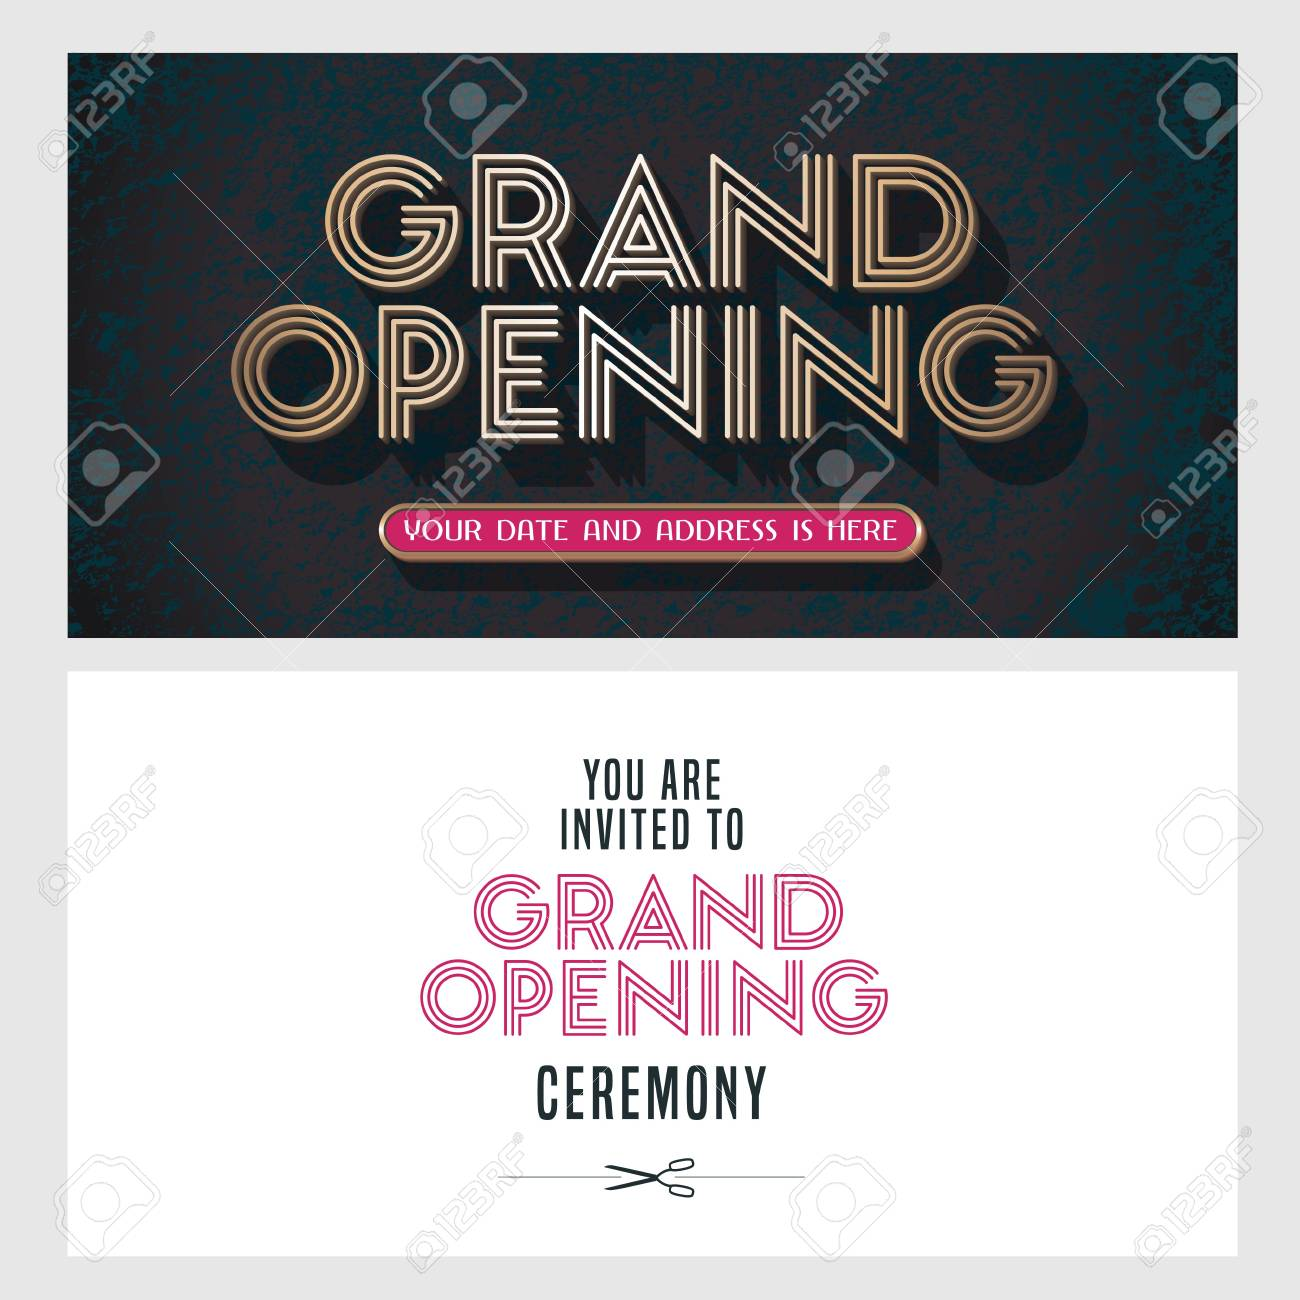 Grand Opening Vector Illustration Invitation Card For New Store